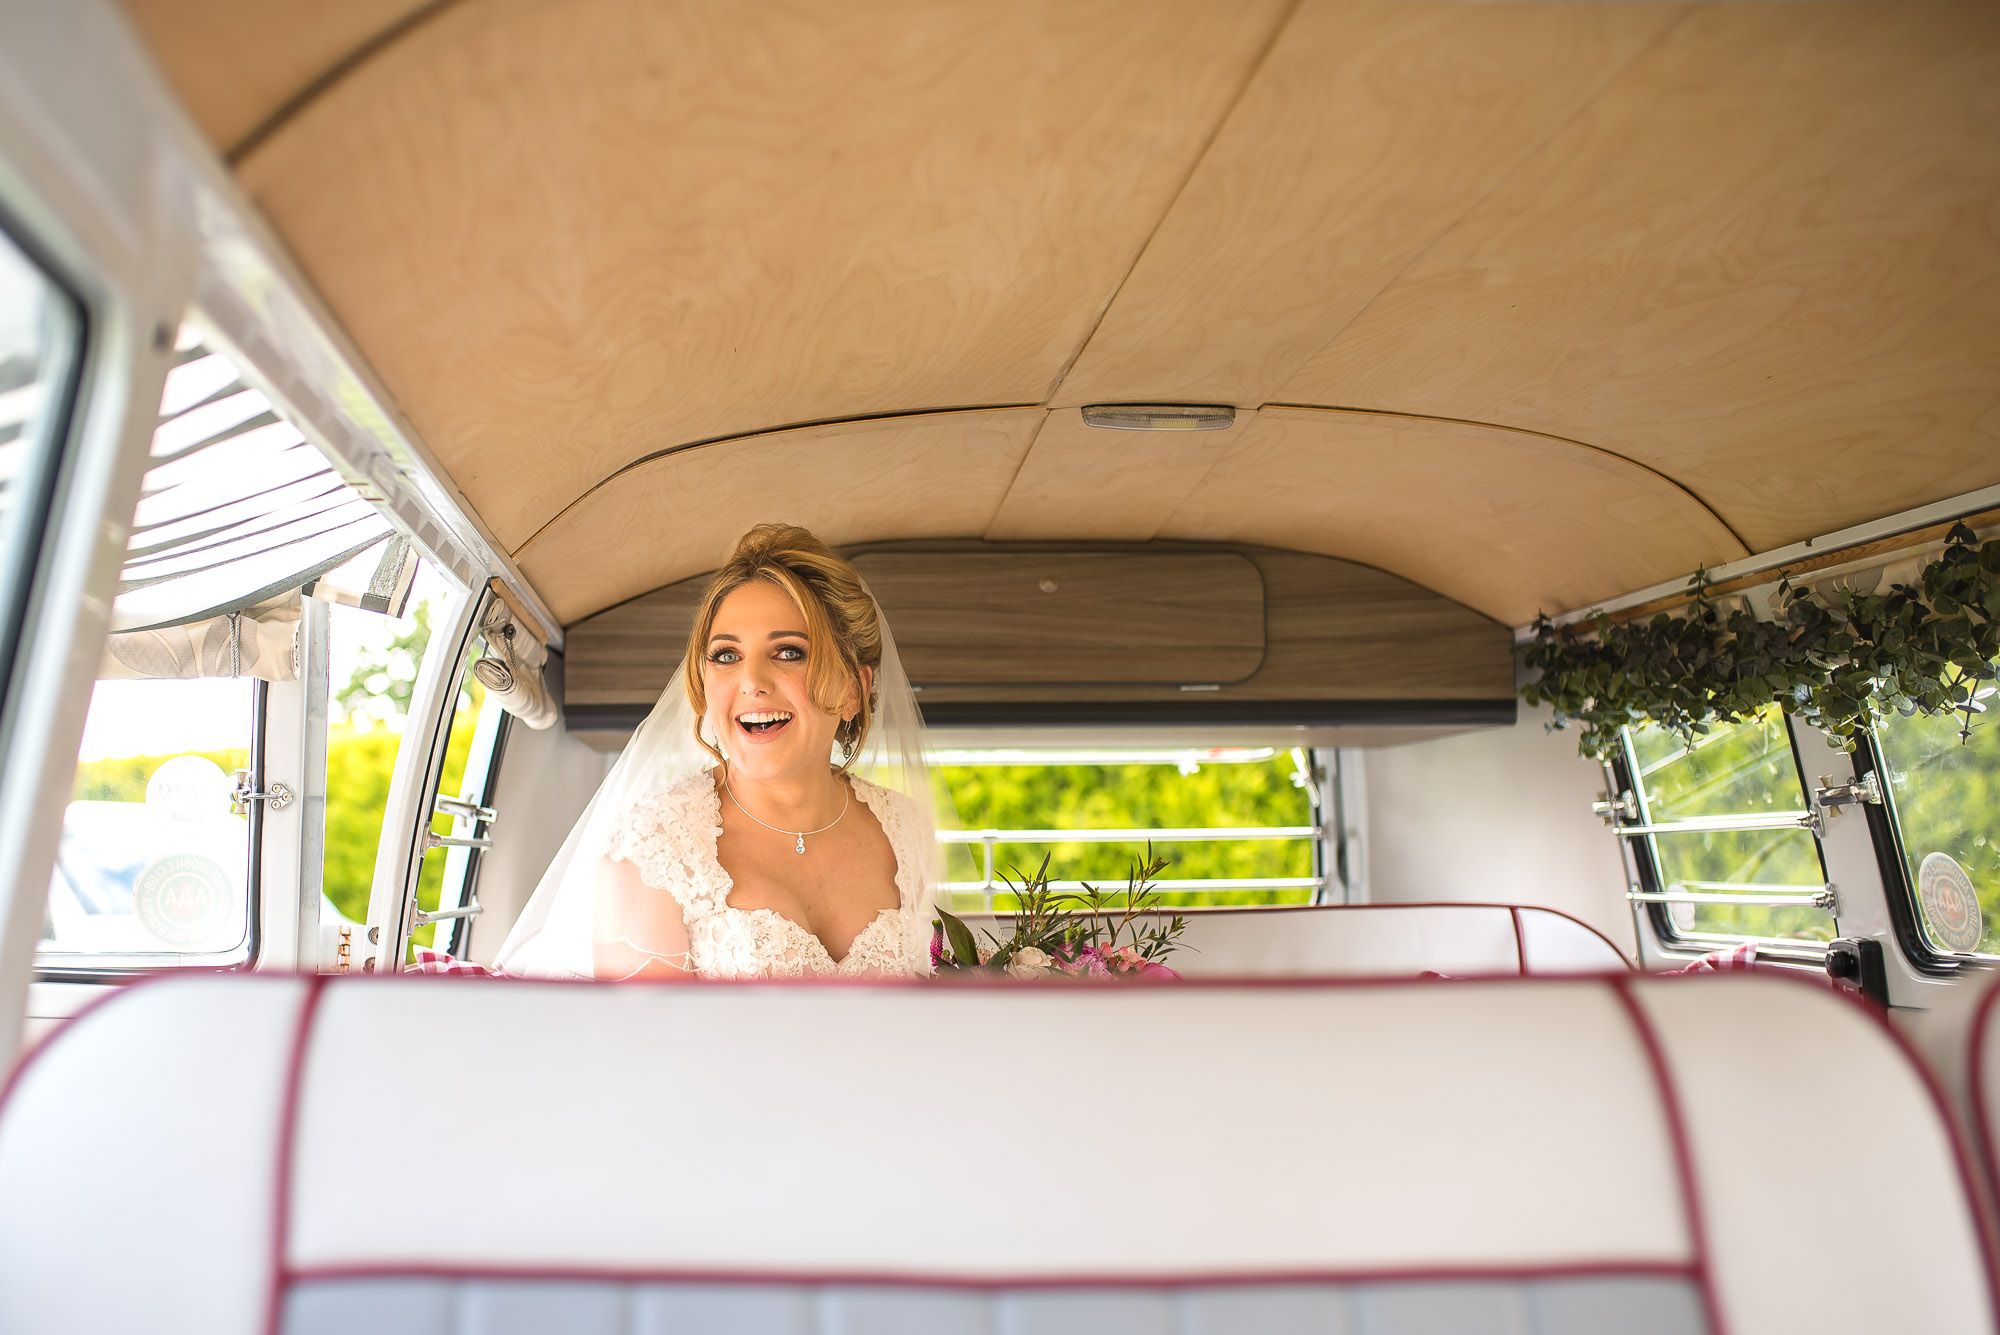 Katey in the Camper Van